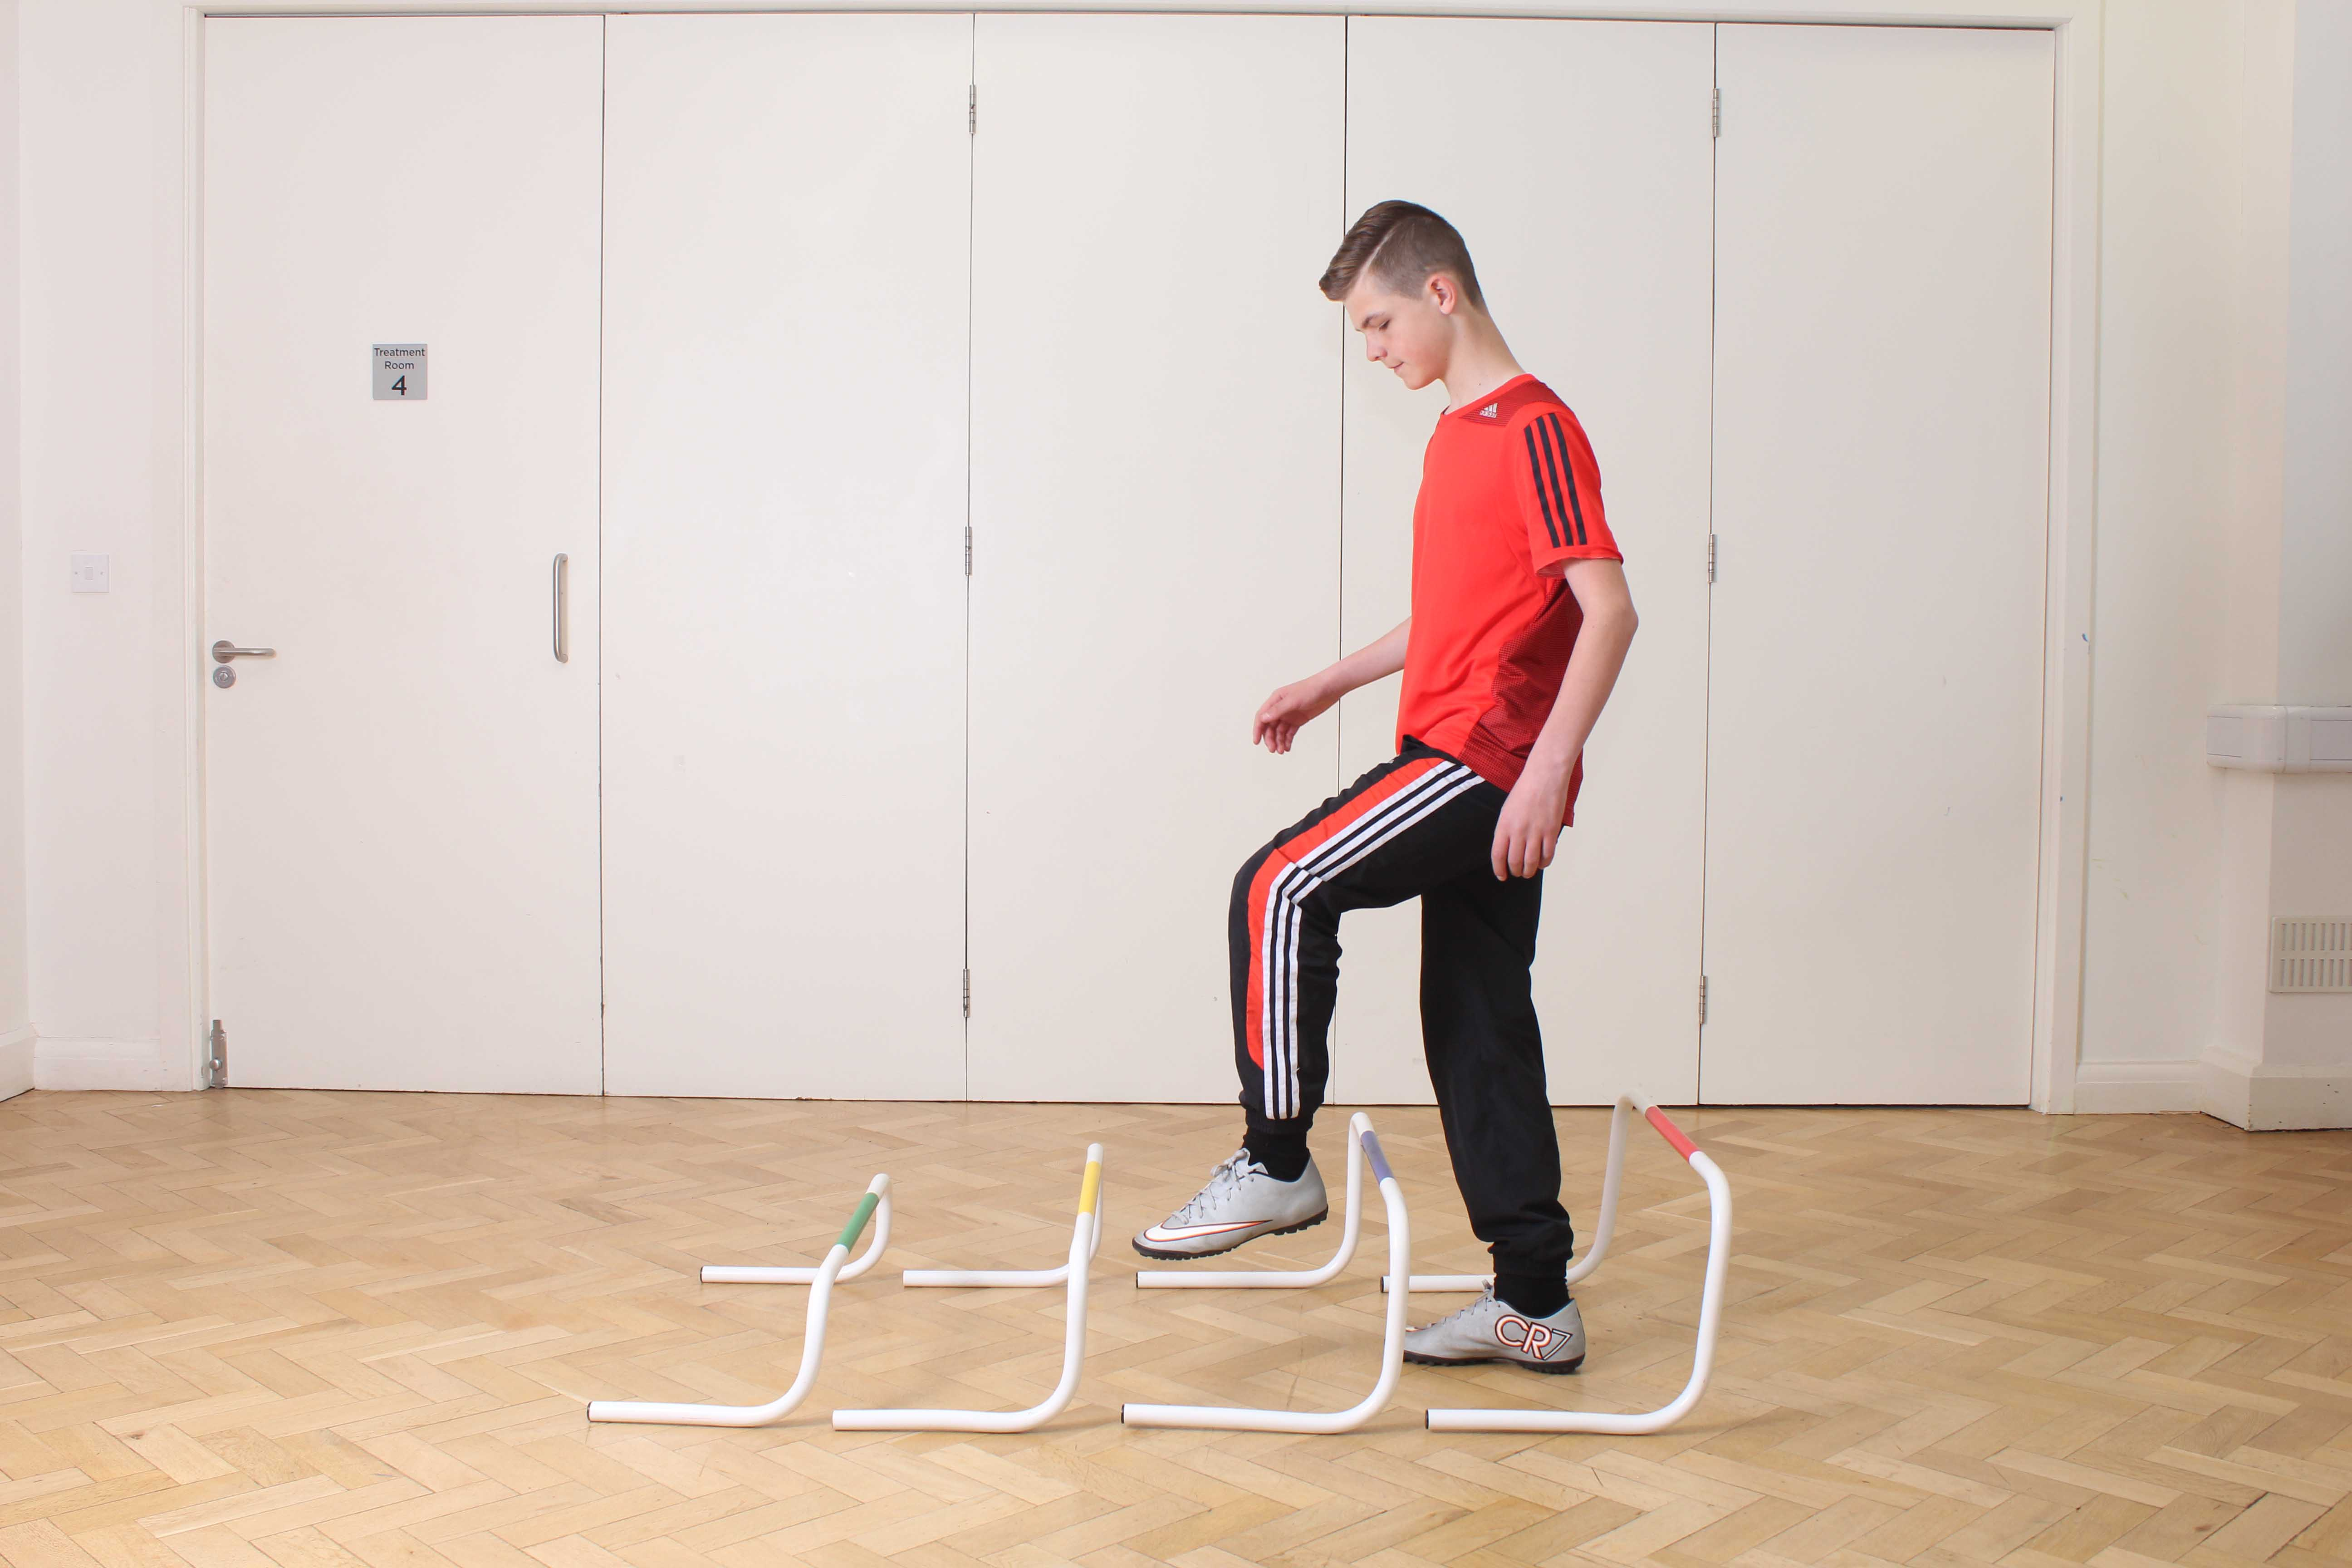 Balance and co-ordination  exercises supervised by a paediatric physiotherapist